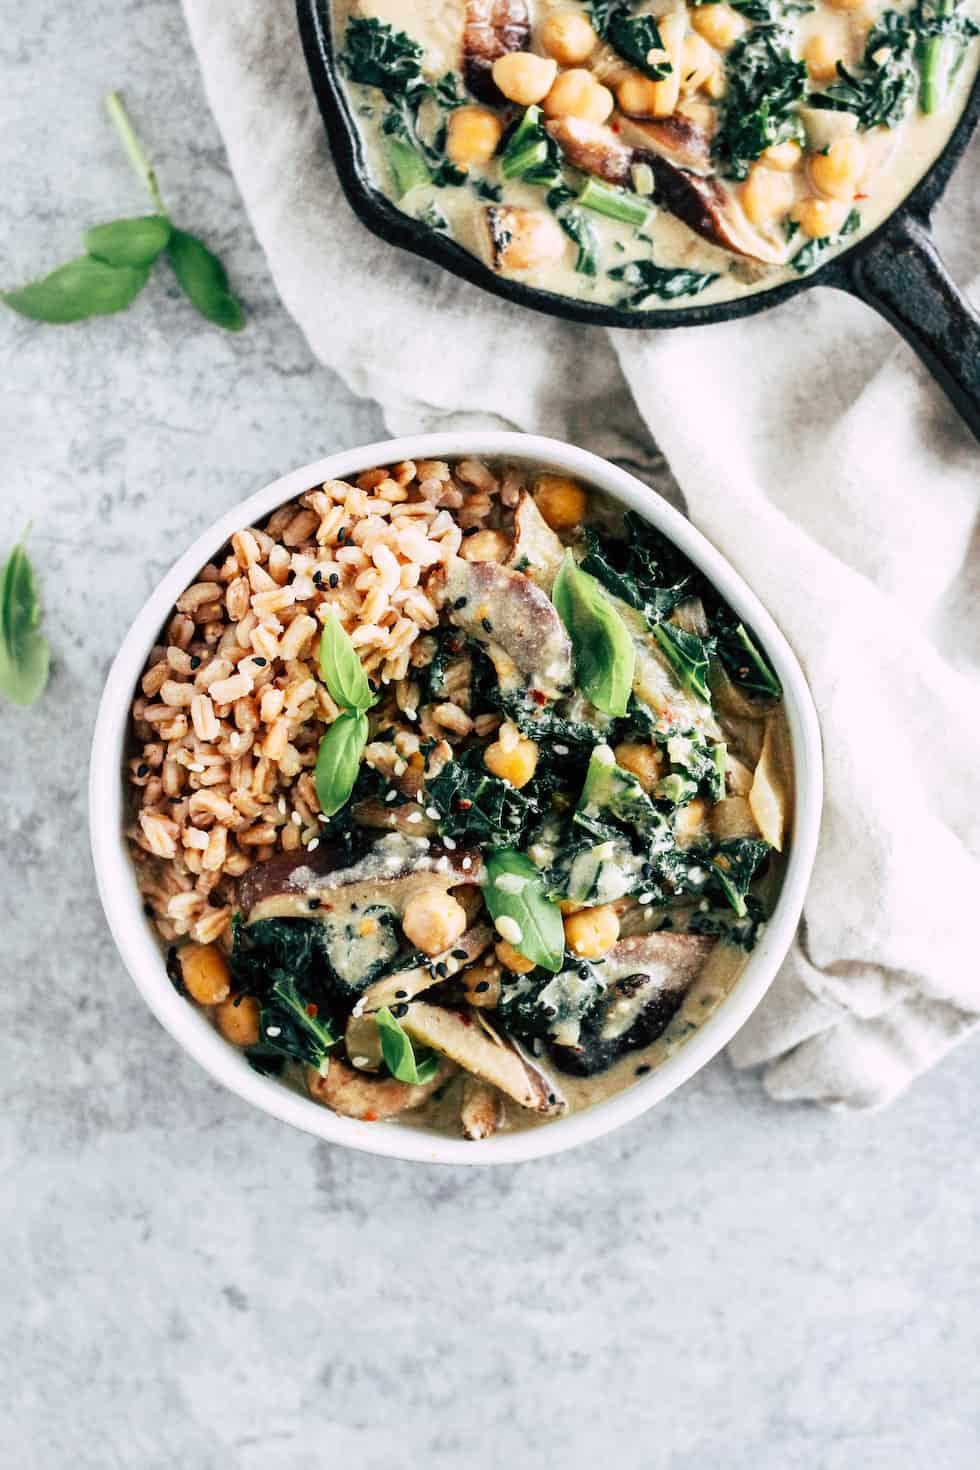 Shiitake mushroom bowls with skillet of creamy miso sauce against grey background with cream napkin.